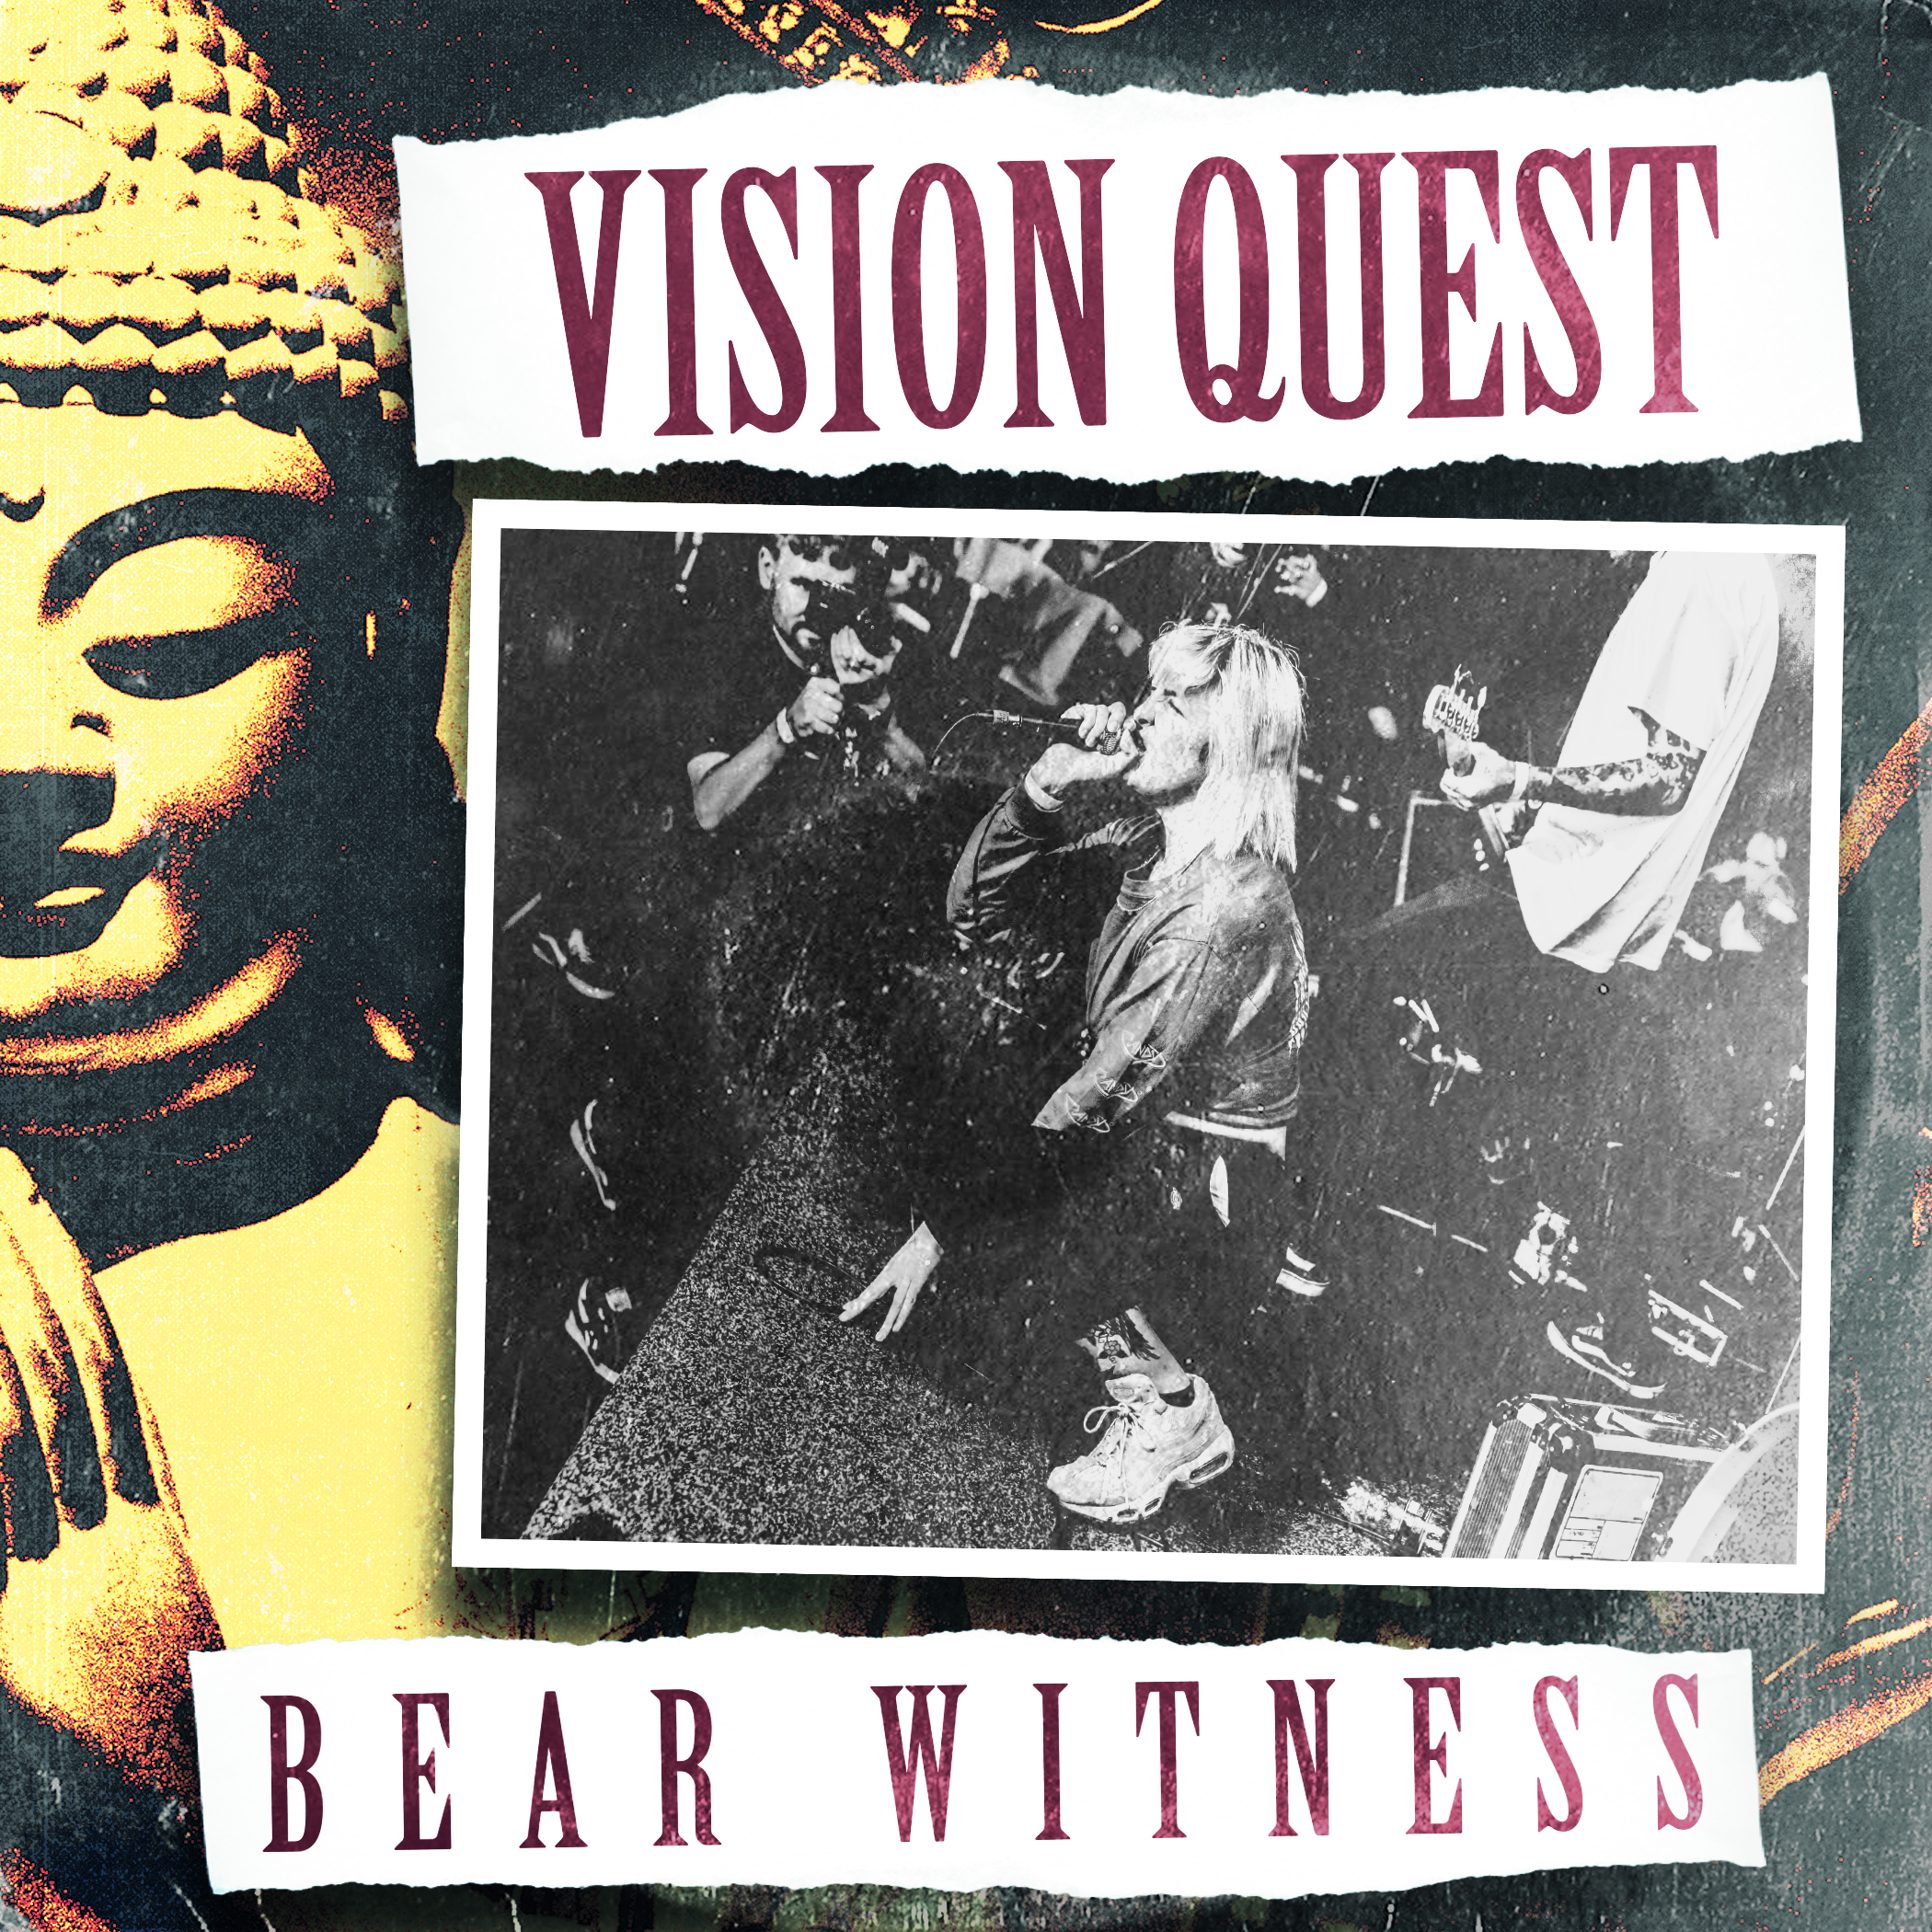 Vision Quest - Bear Witness